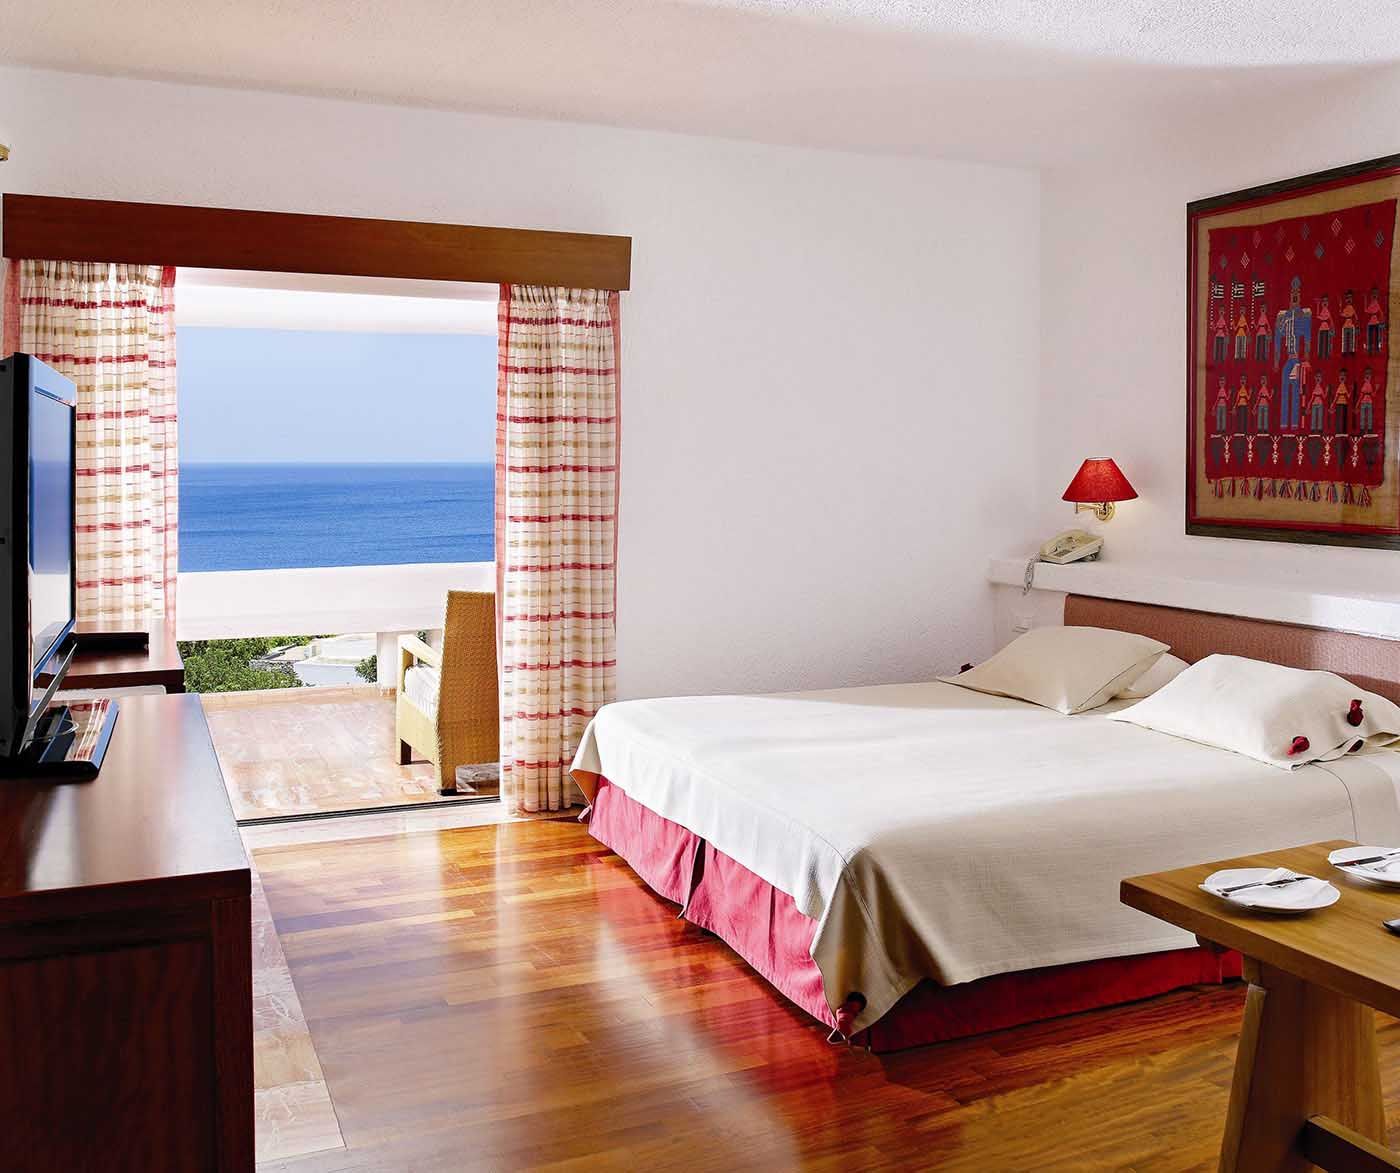 Agios Myronas hotels & resorts, 50% discount for early bookings, Agios Myronas, Heraklion, Crete, Greece